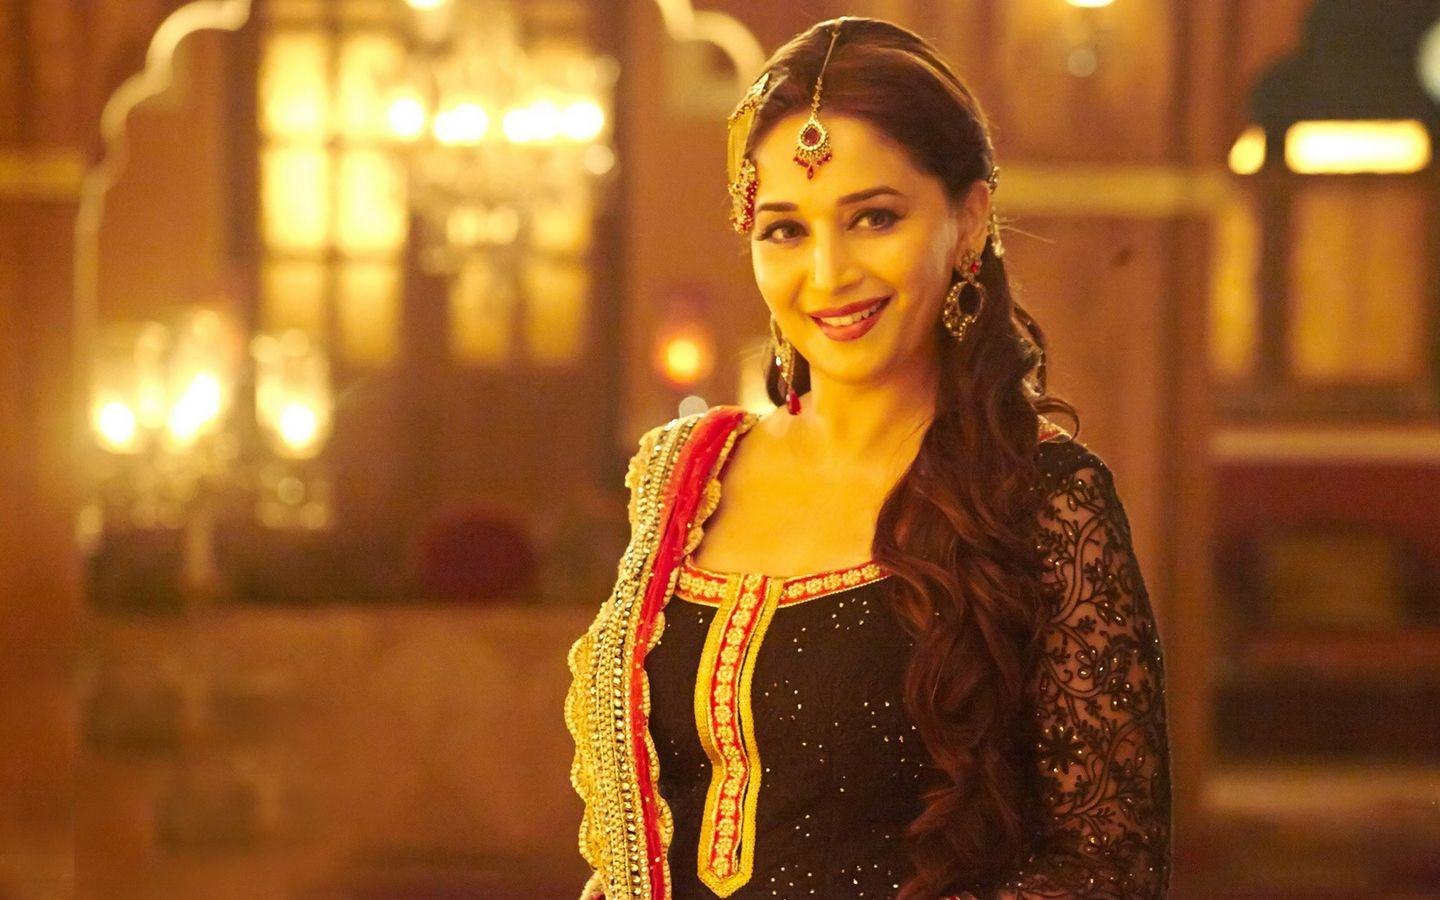 B'day Special: Hot Smiling And Cute Look Images Of Madhuri Dixit